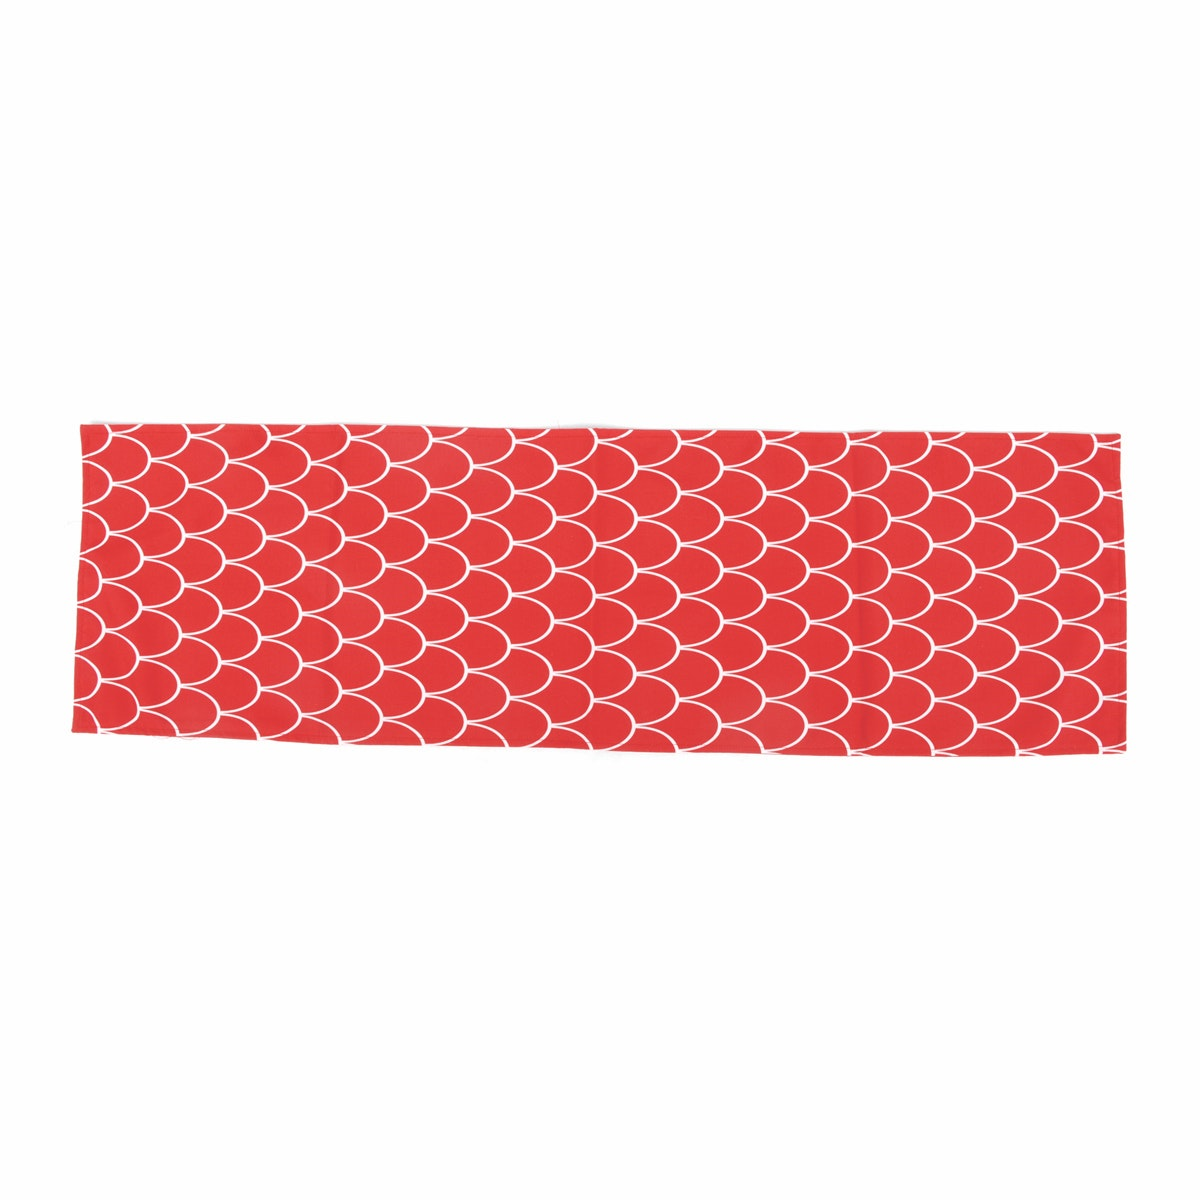 Glerry Home Decor Red Passion Table Runner 150x30cm